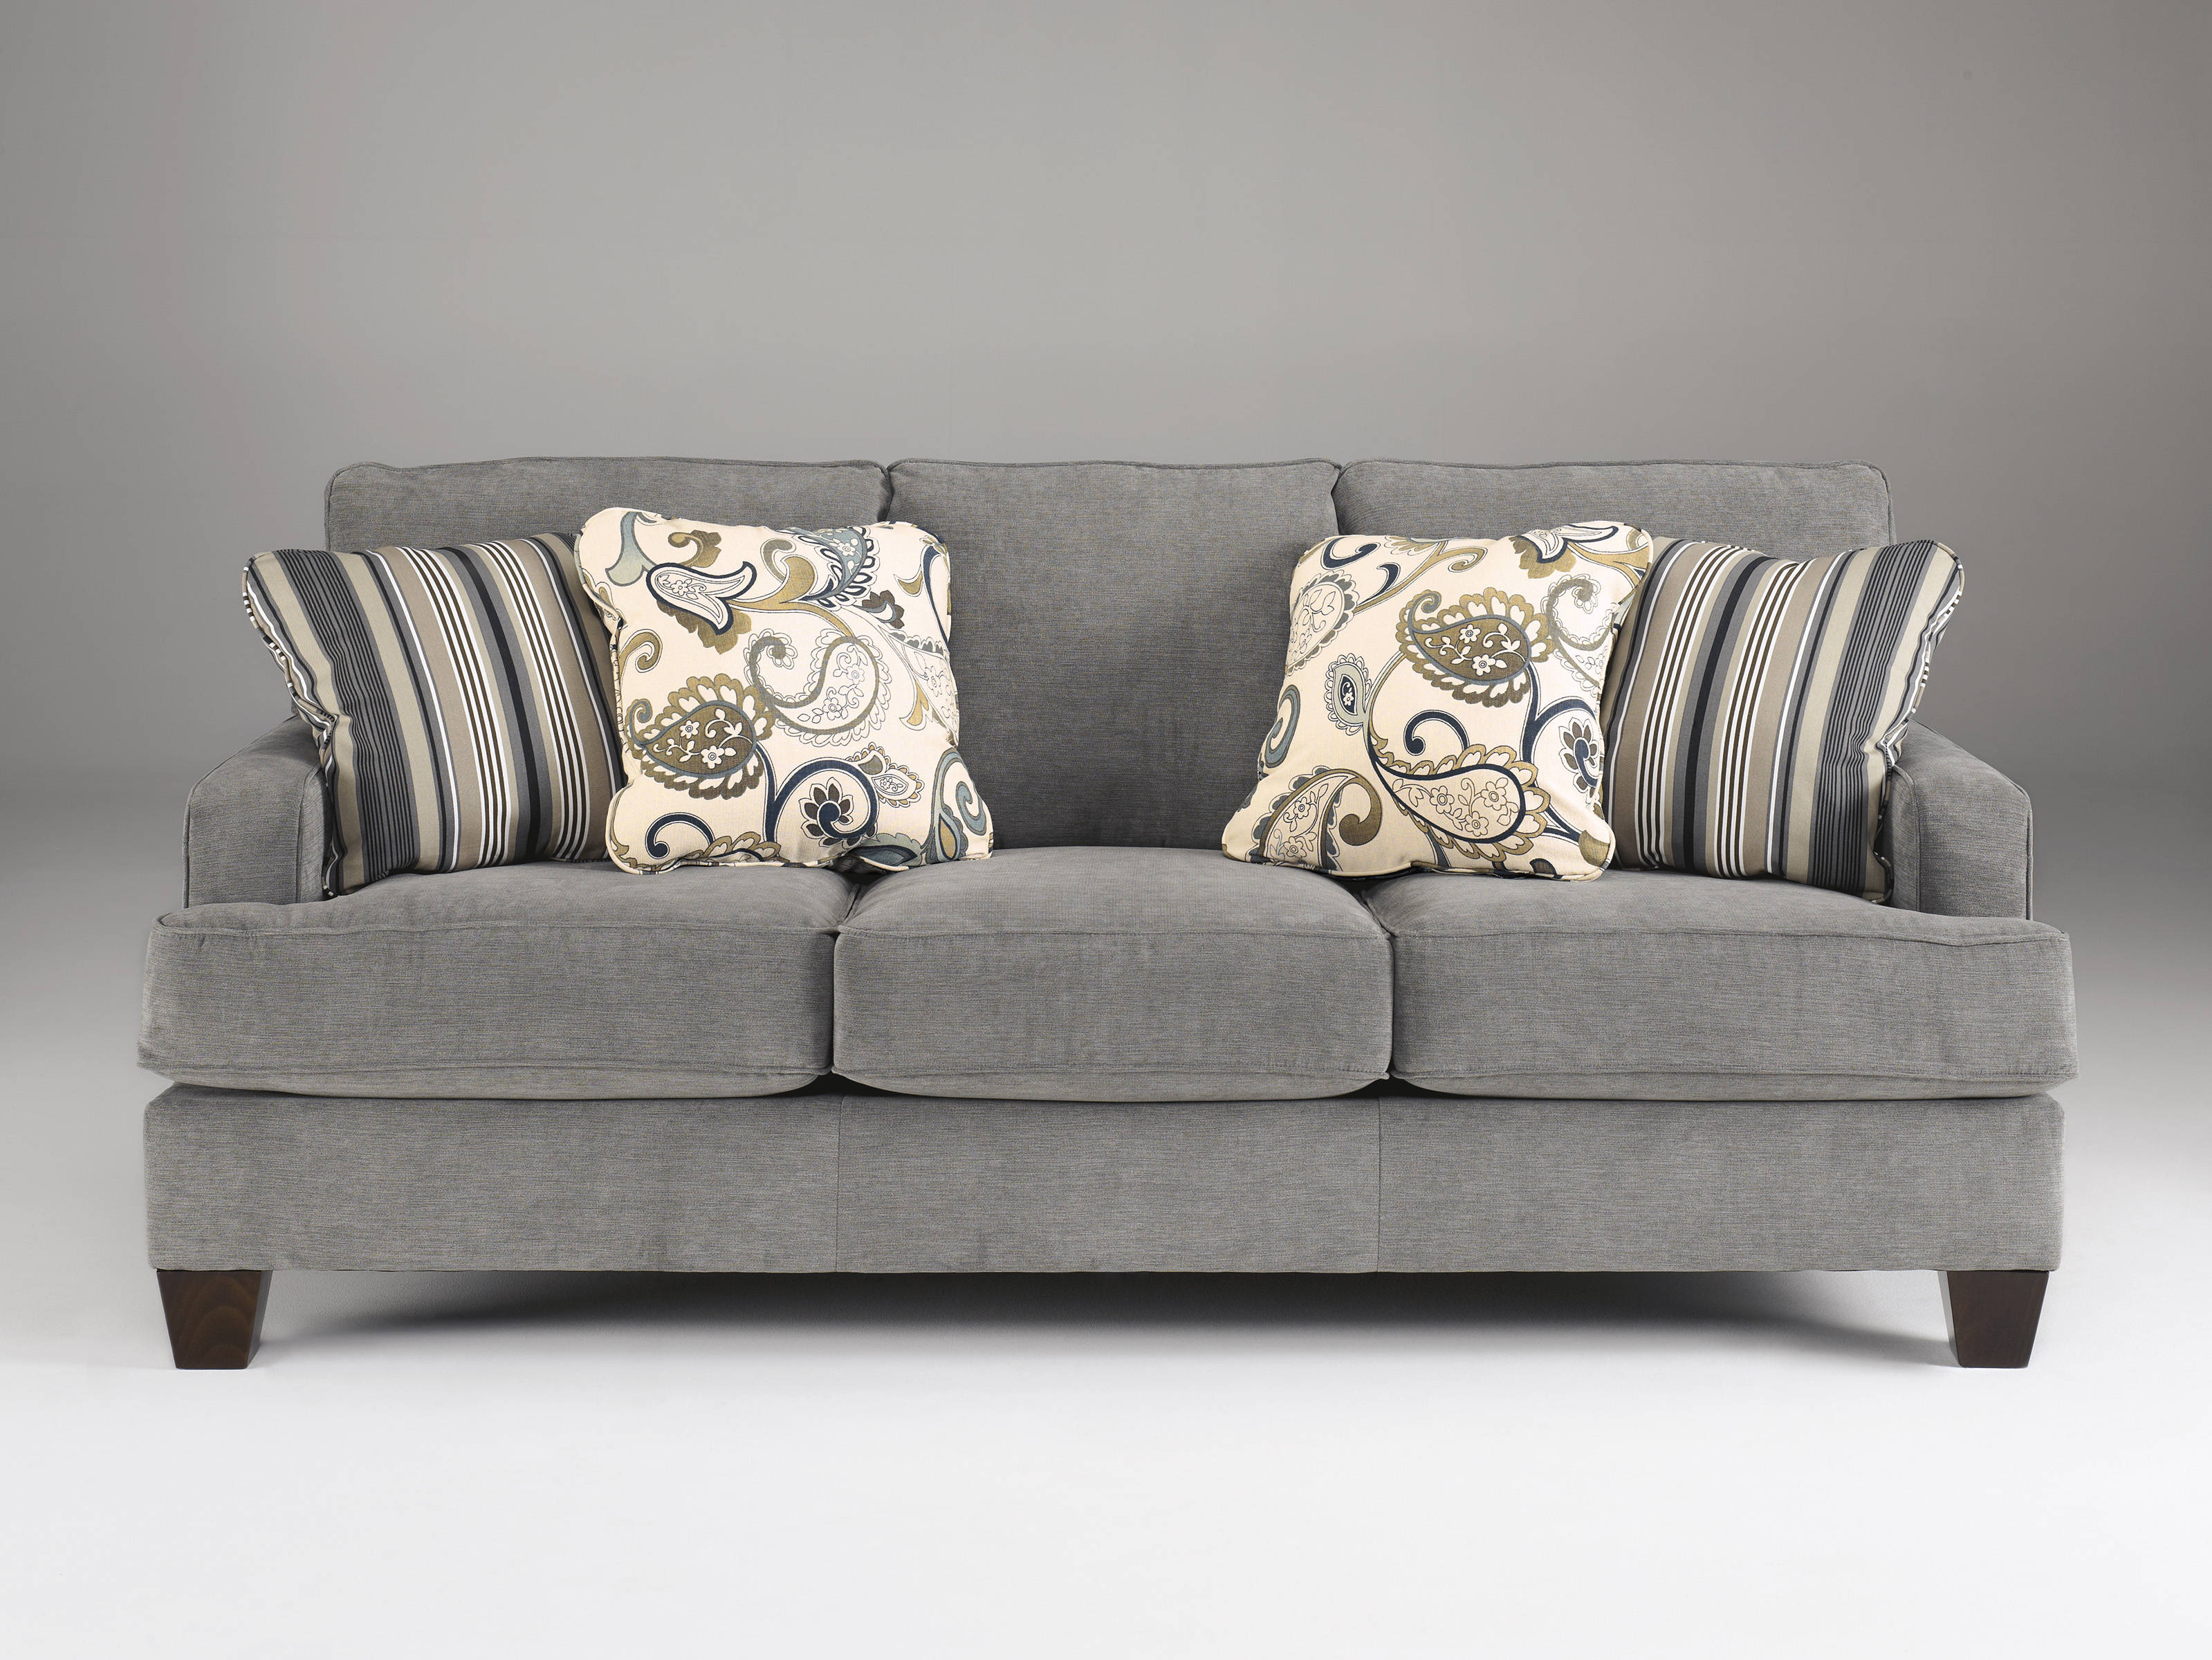 Ashley Furniture Yvette Sofa The Classy Home